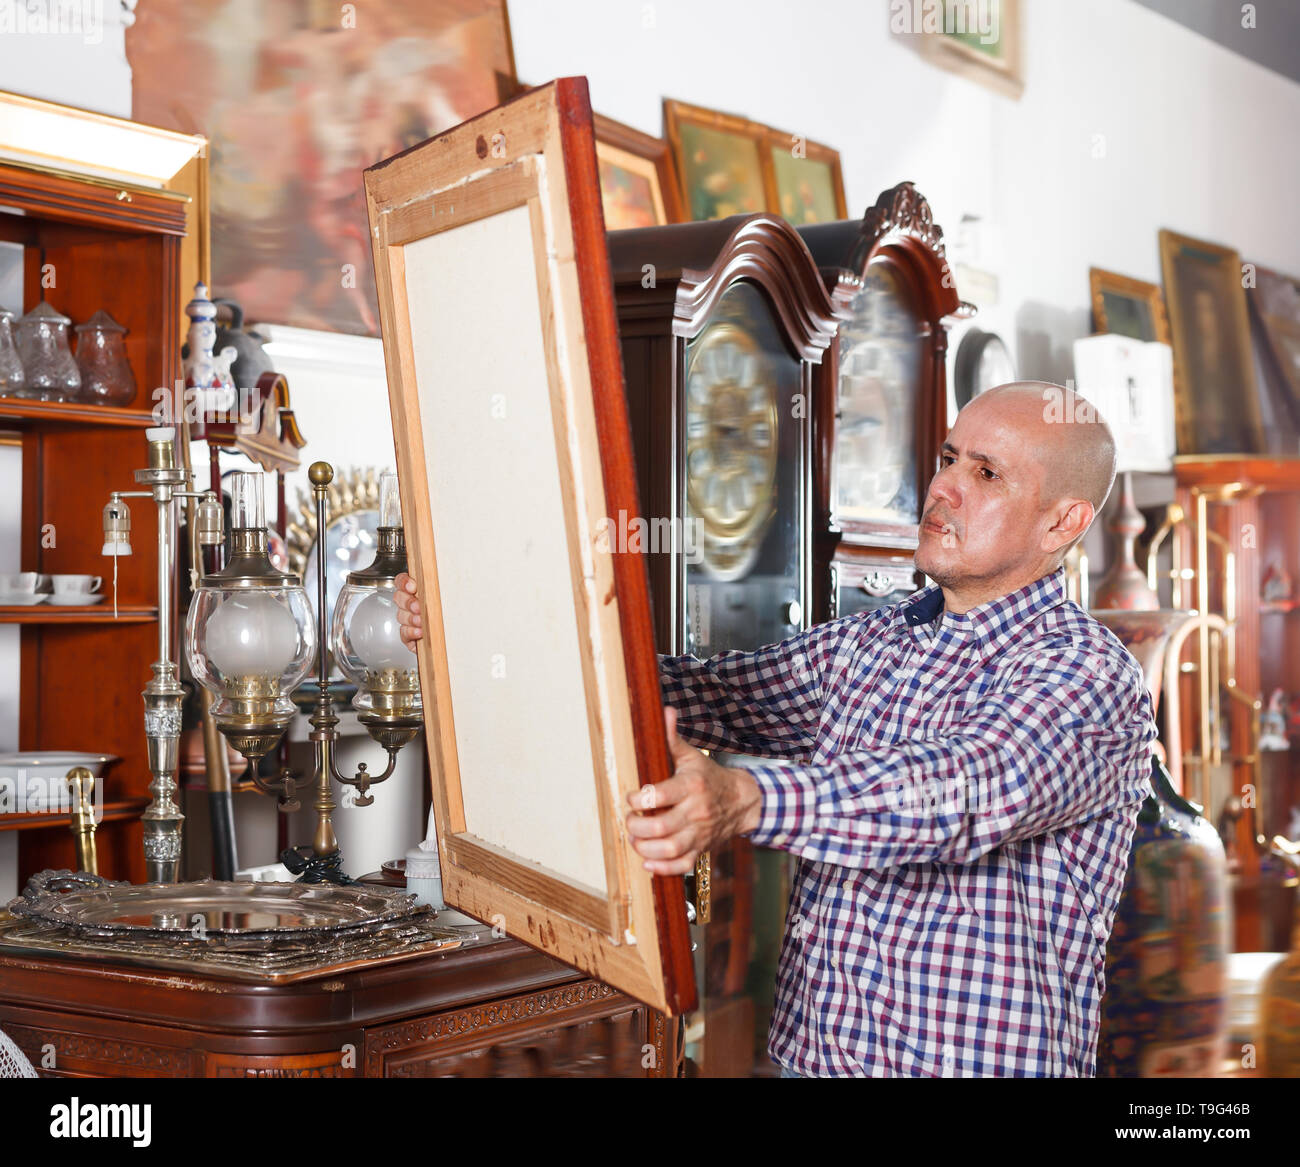 Ordinary male carefully examining antiques in store - Stock Image